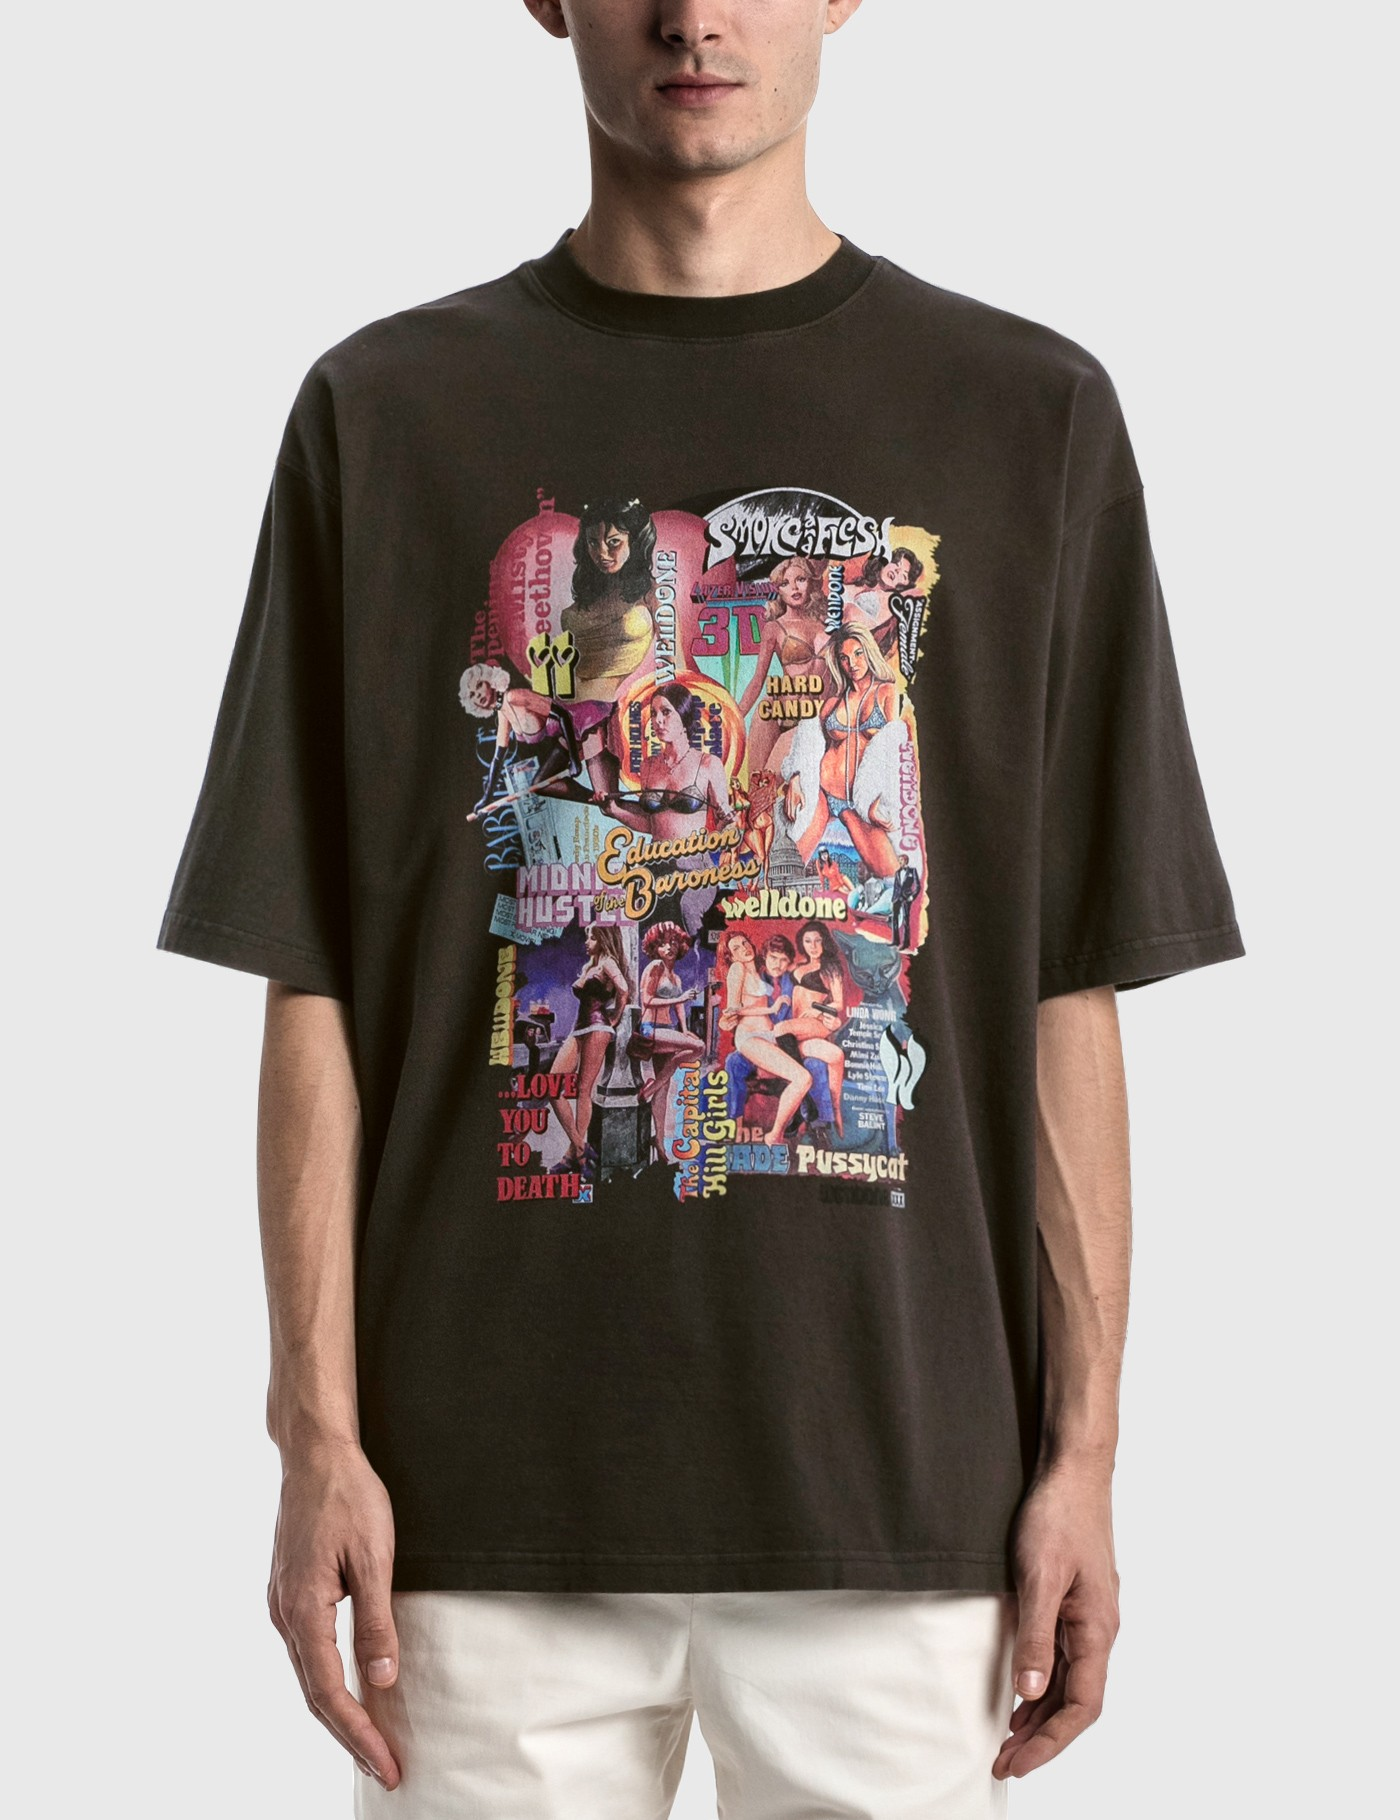 New Movie Collage T-shirt